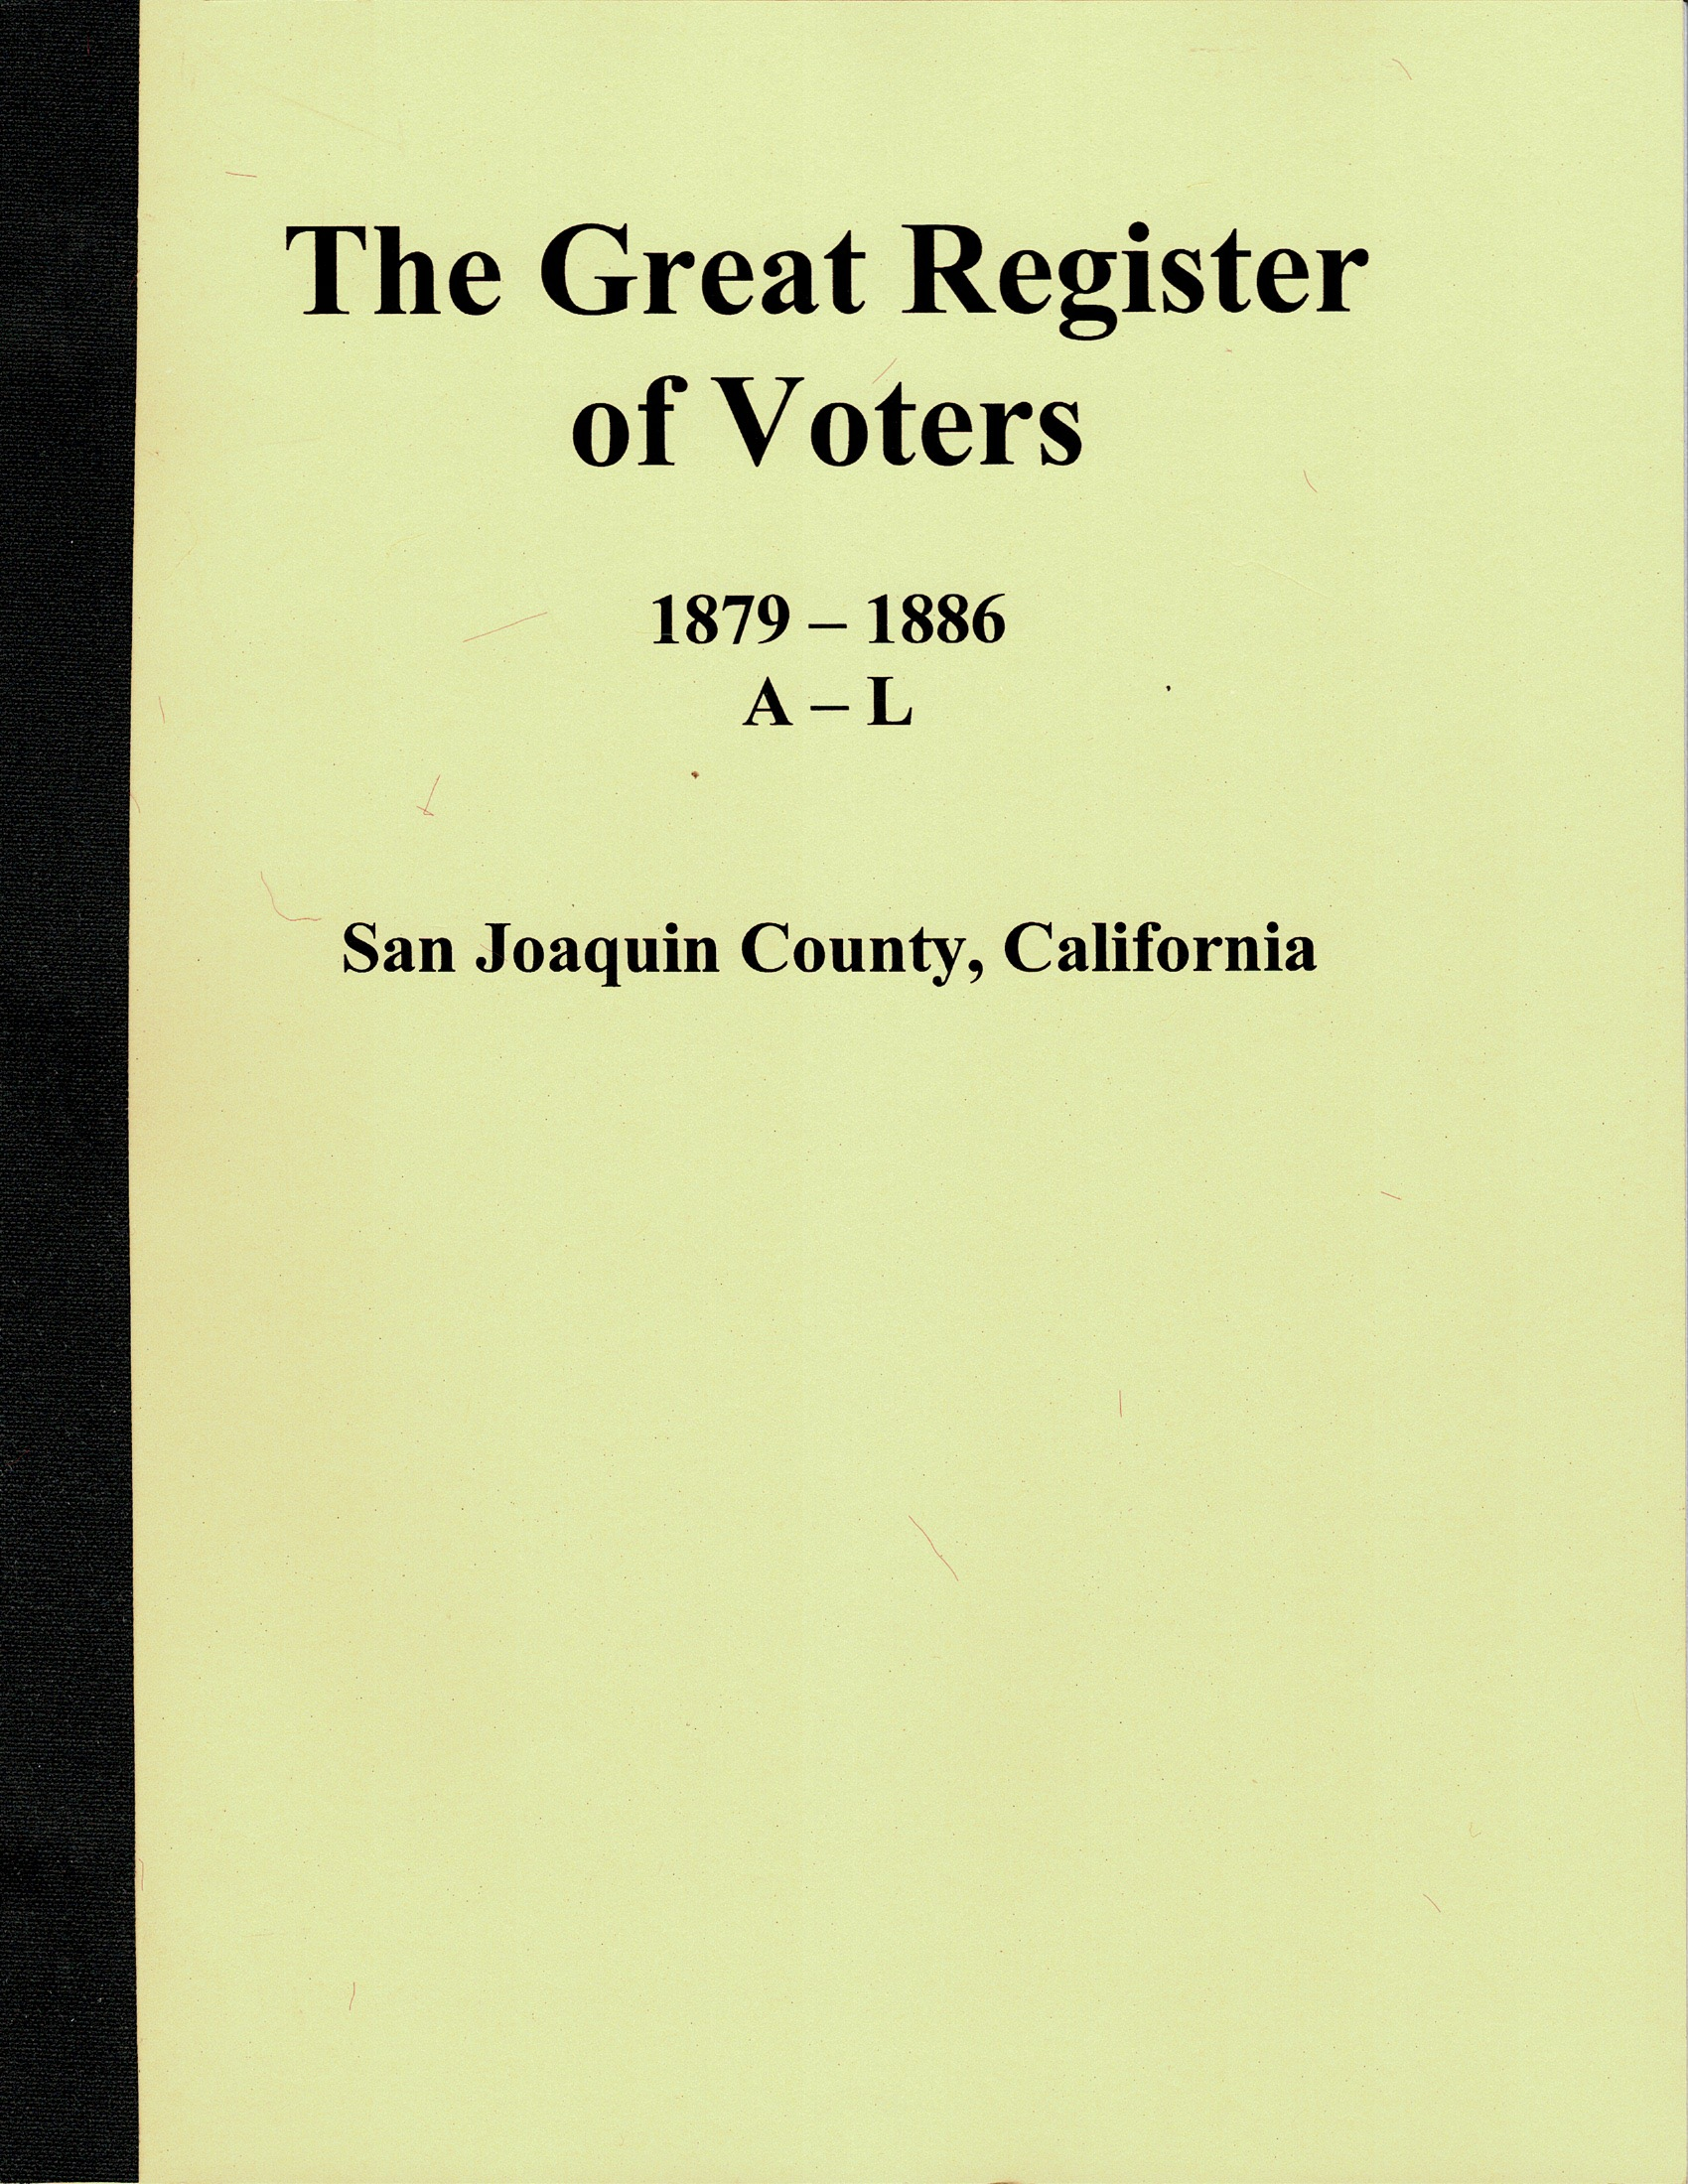 The Great Register of Voters, 1879 – 1886, A – L, San Joaquin County, California